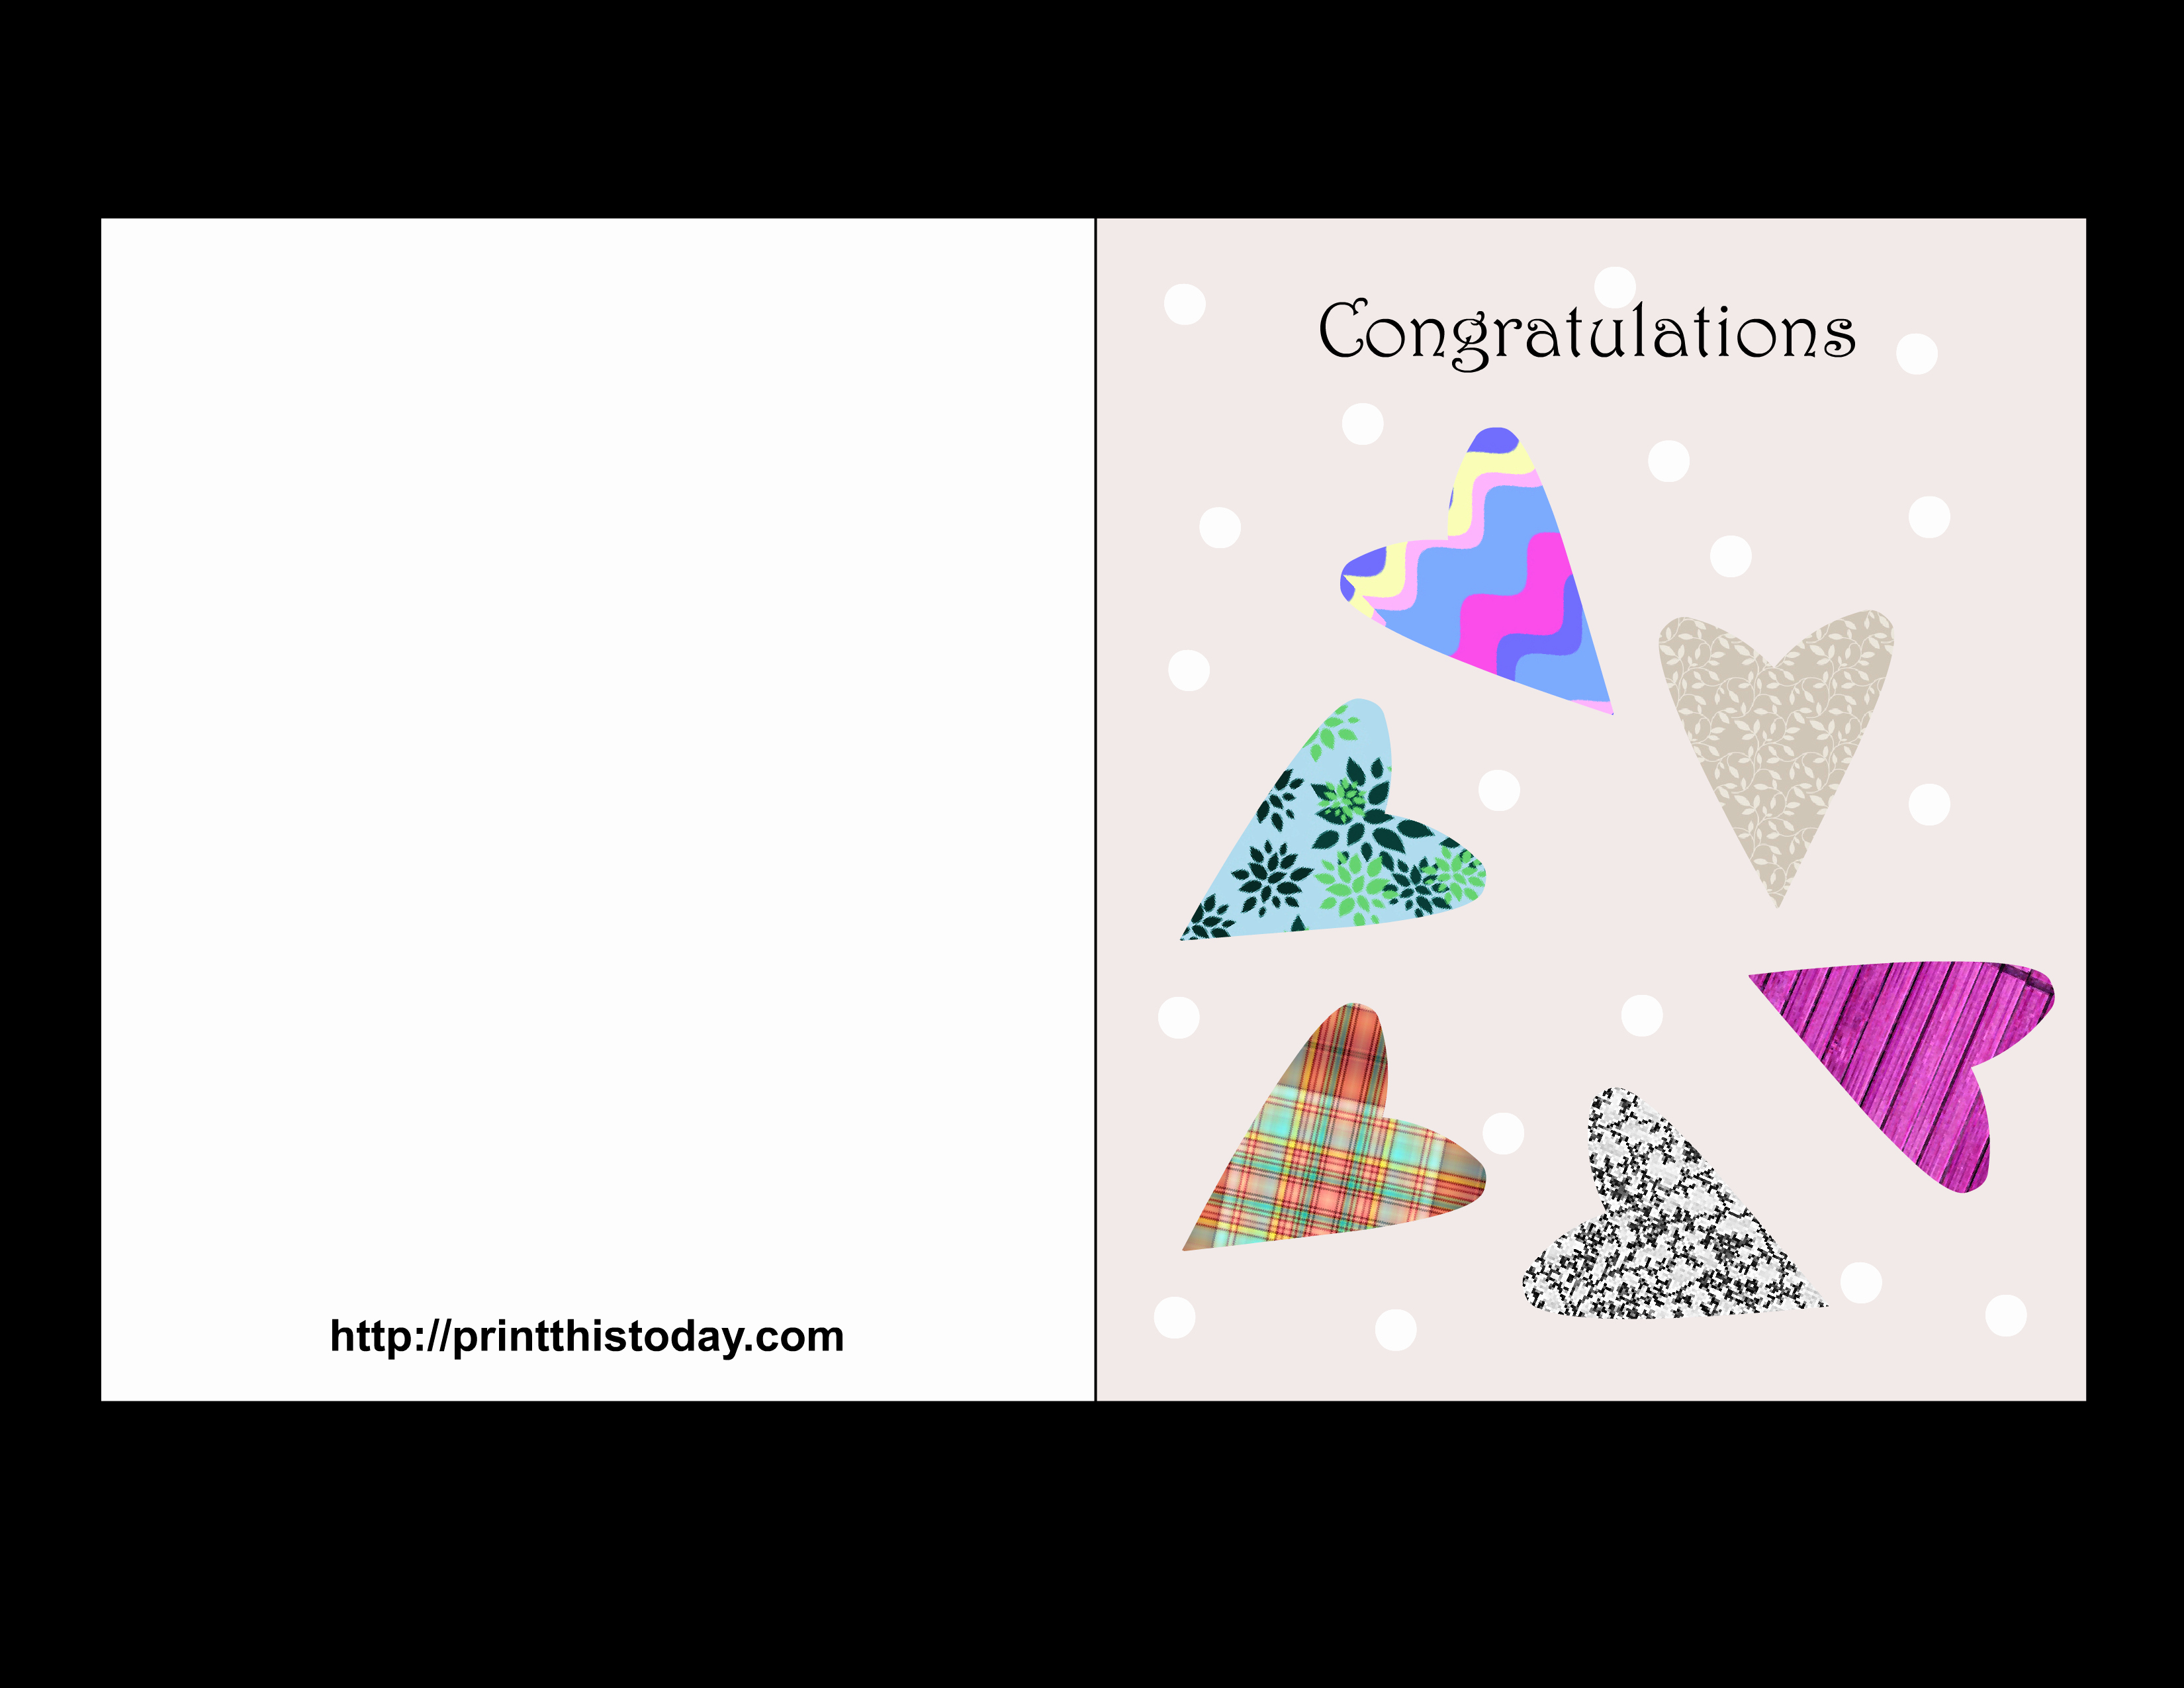 Free Printable Wedding Cards New Free Printable Wedding Congratulations Cards